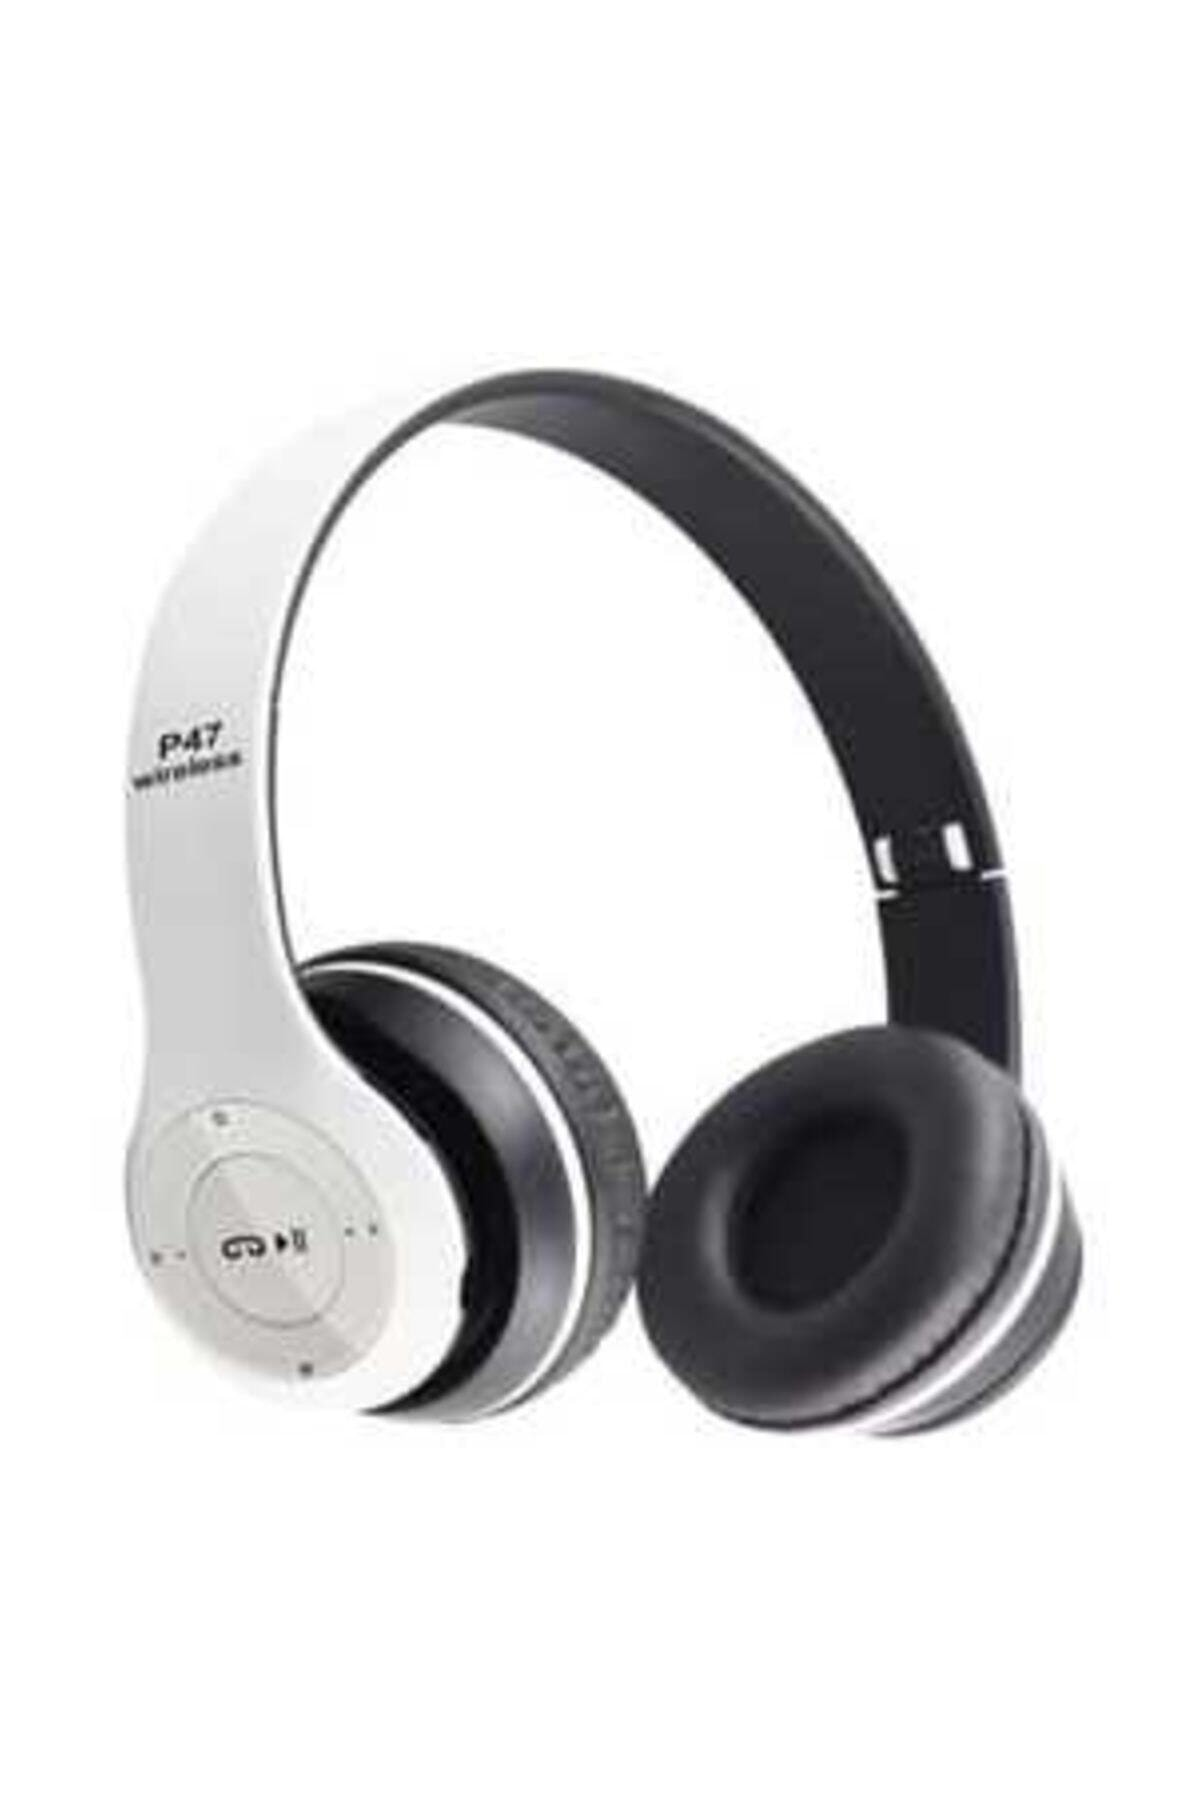 BLUE İNTER P47 5.0+edr Wireless Headphones Bluetooth Kulaklık 1